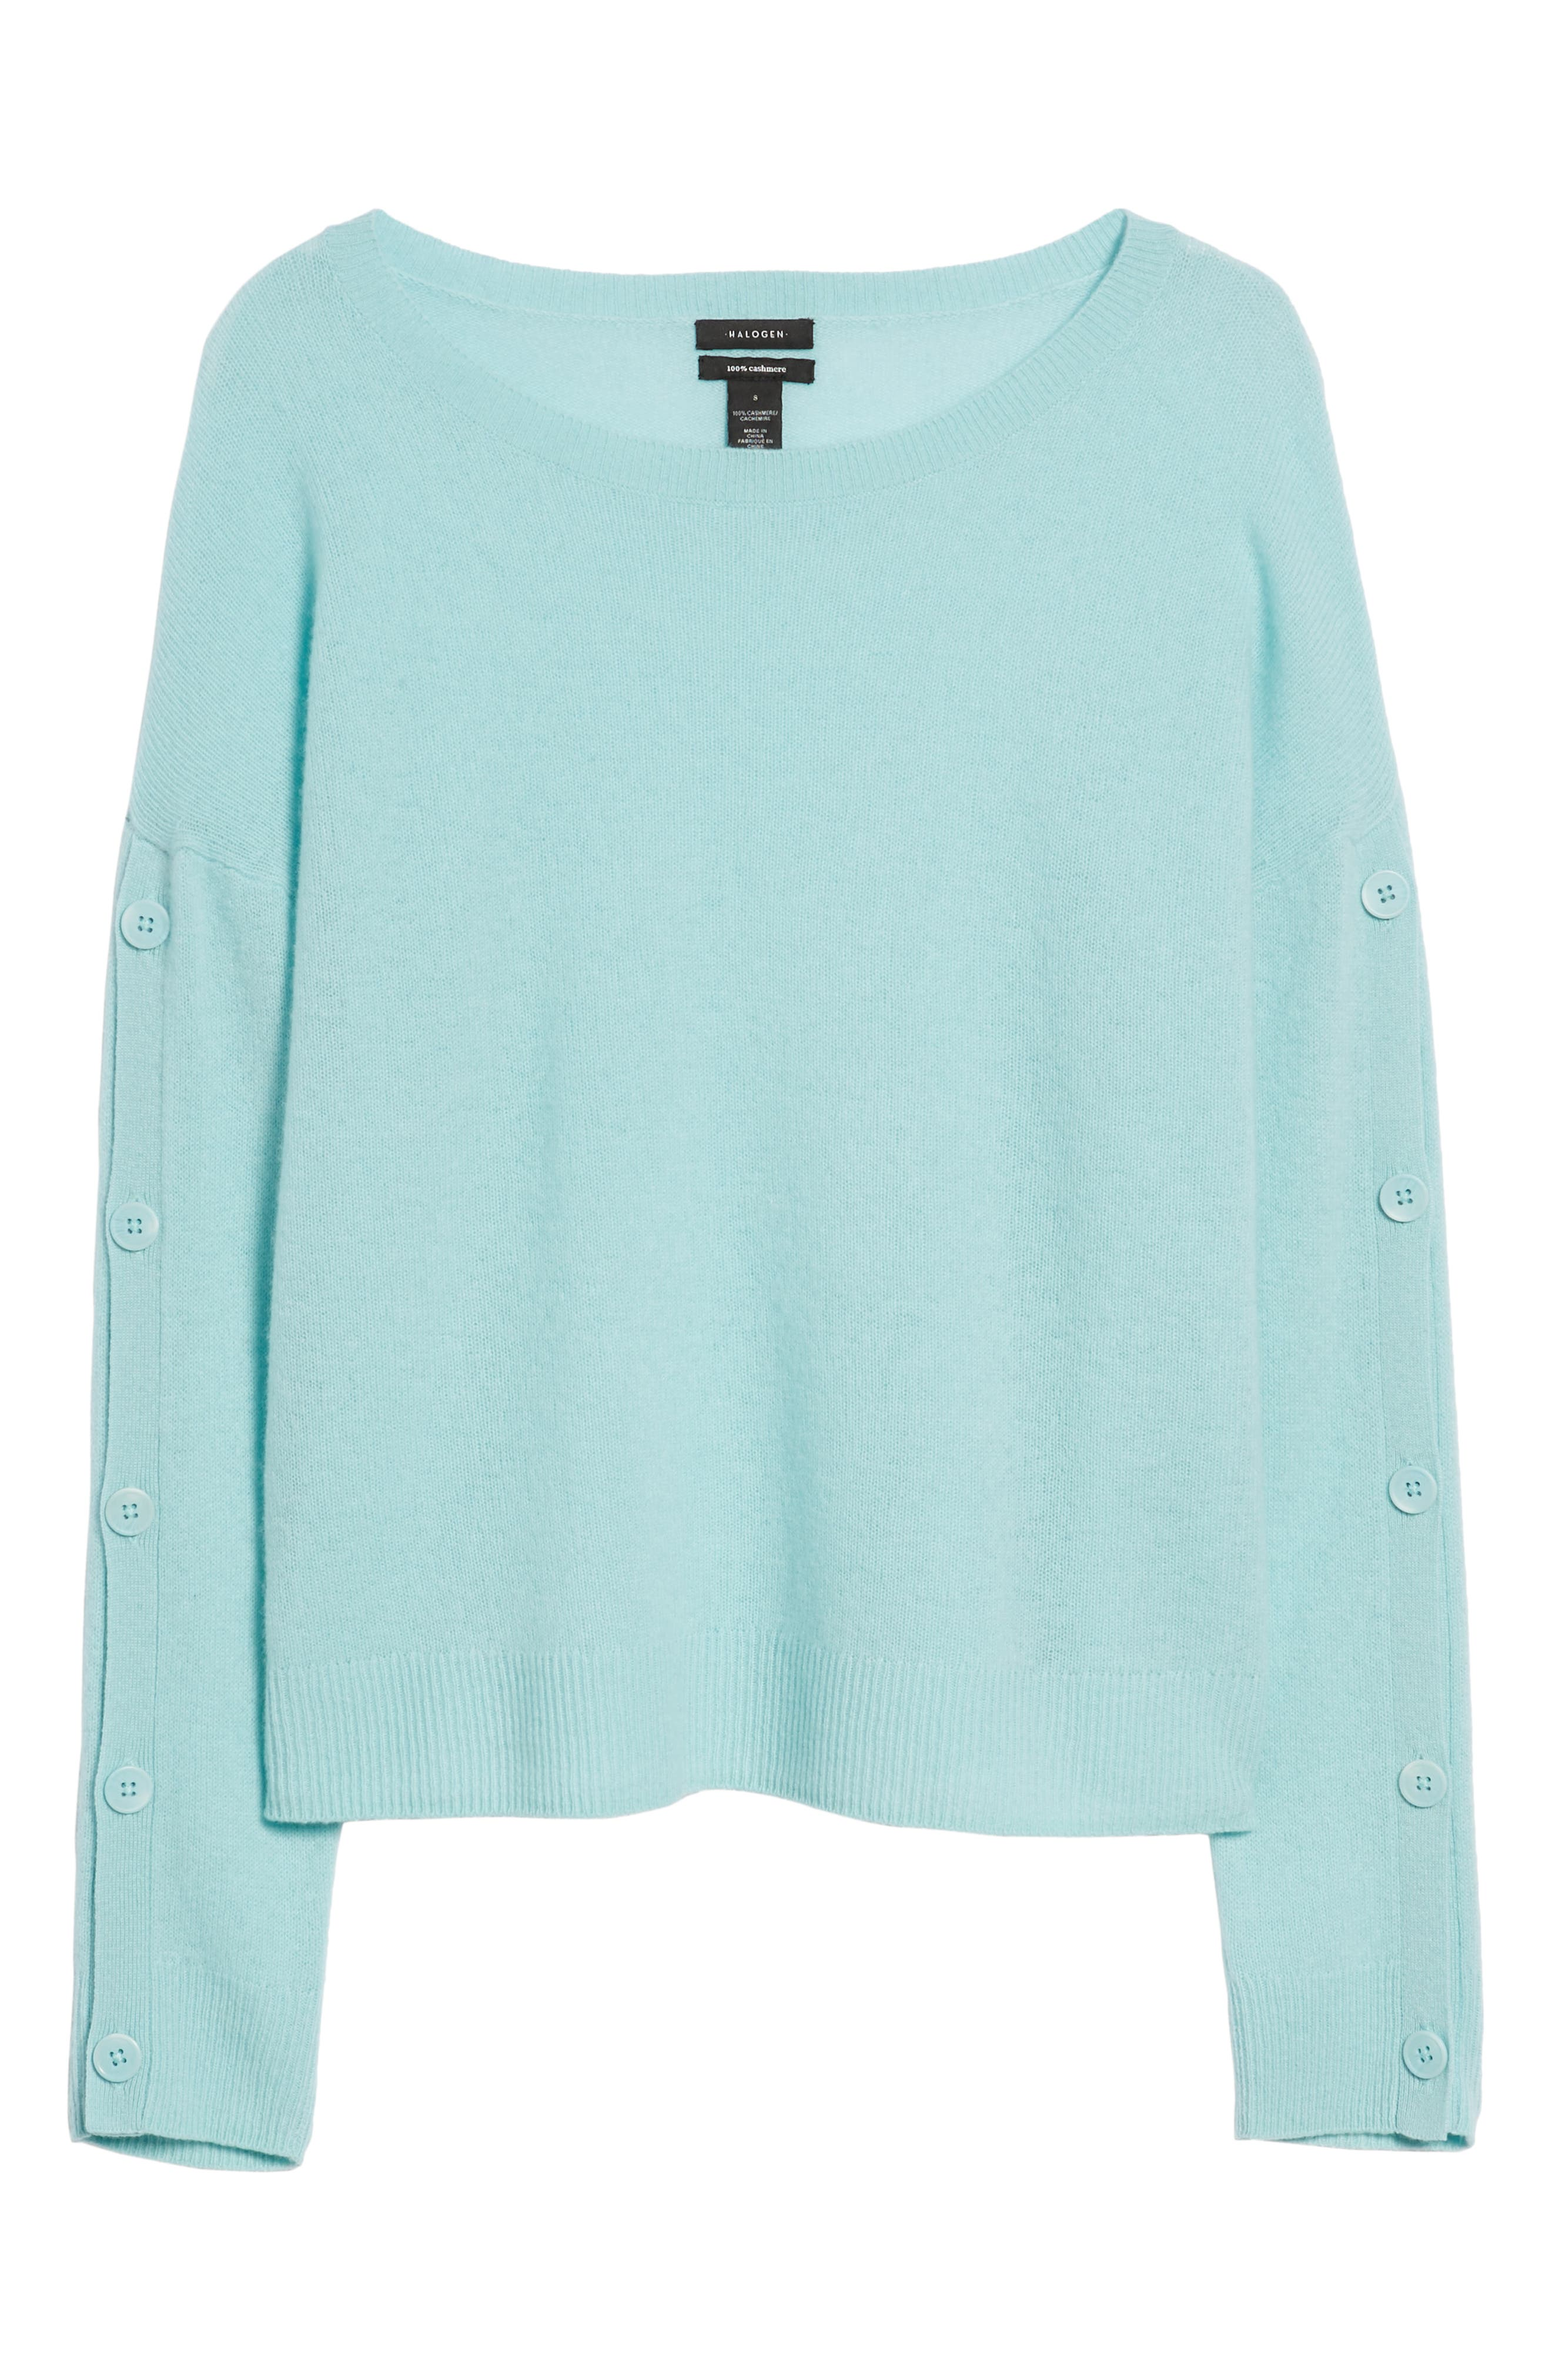 Cashmere Button Sleeve Sweater,                             Alternate thumbnail 6, color,                             450